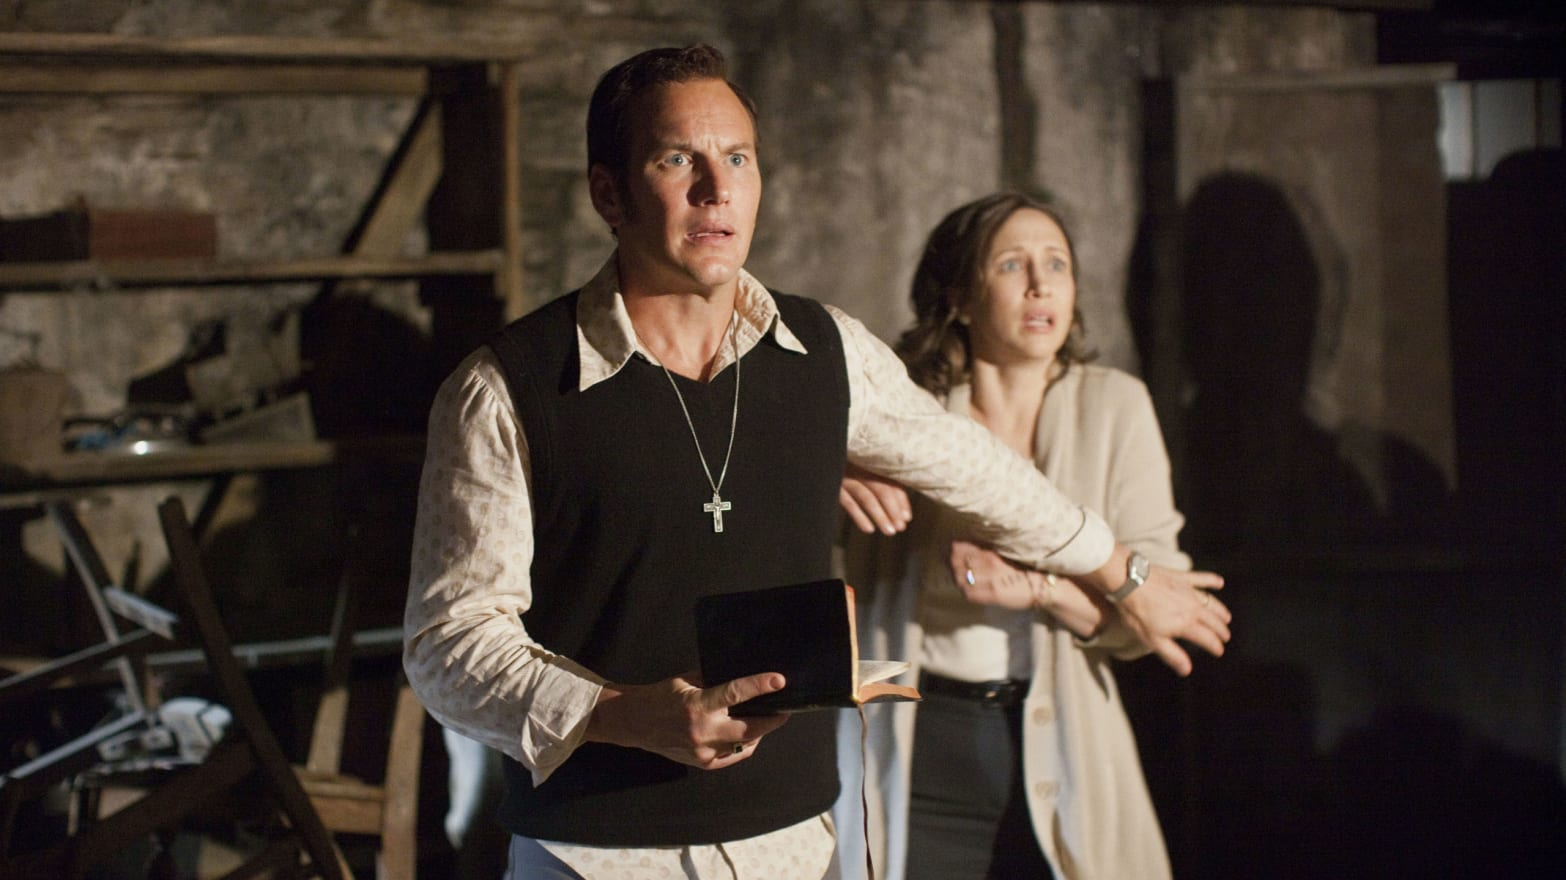 The Conjuring: The Devil Made Me Do It' True Story of Demonic Murder  Continues Warrens' Unreliable Tradition